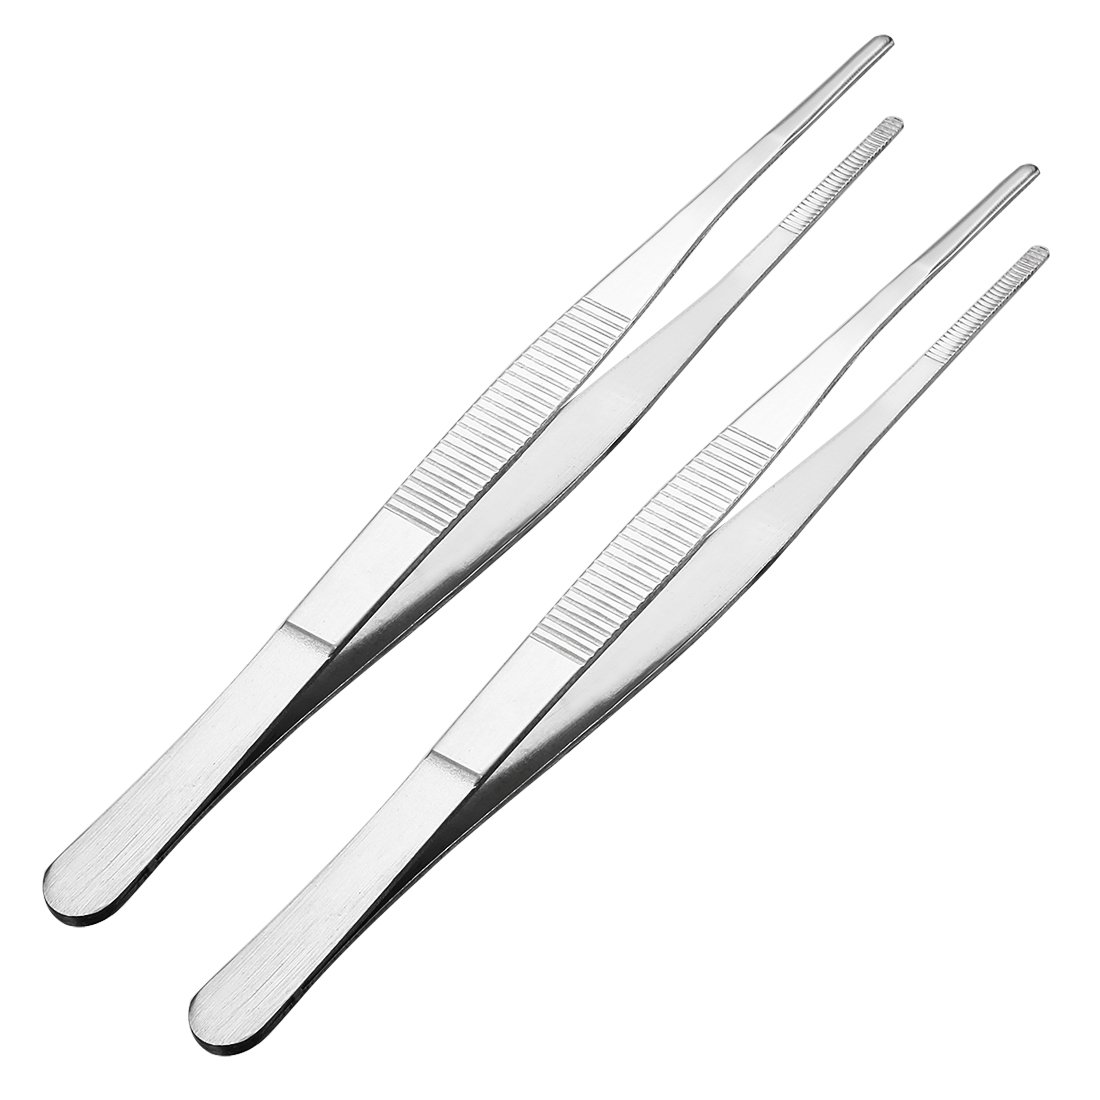 uxcell 3 Pcs Stainless Steel Straight Blunt Tweezers Serrated Tip,10 inch a18041300ux0059